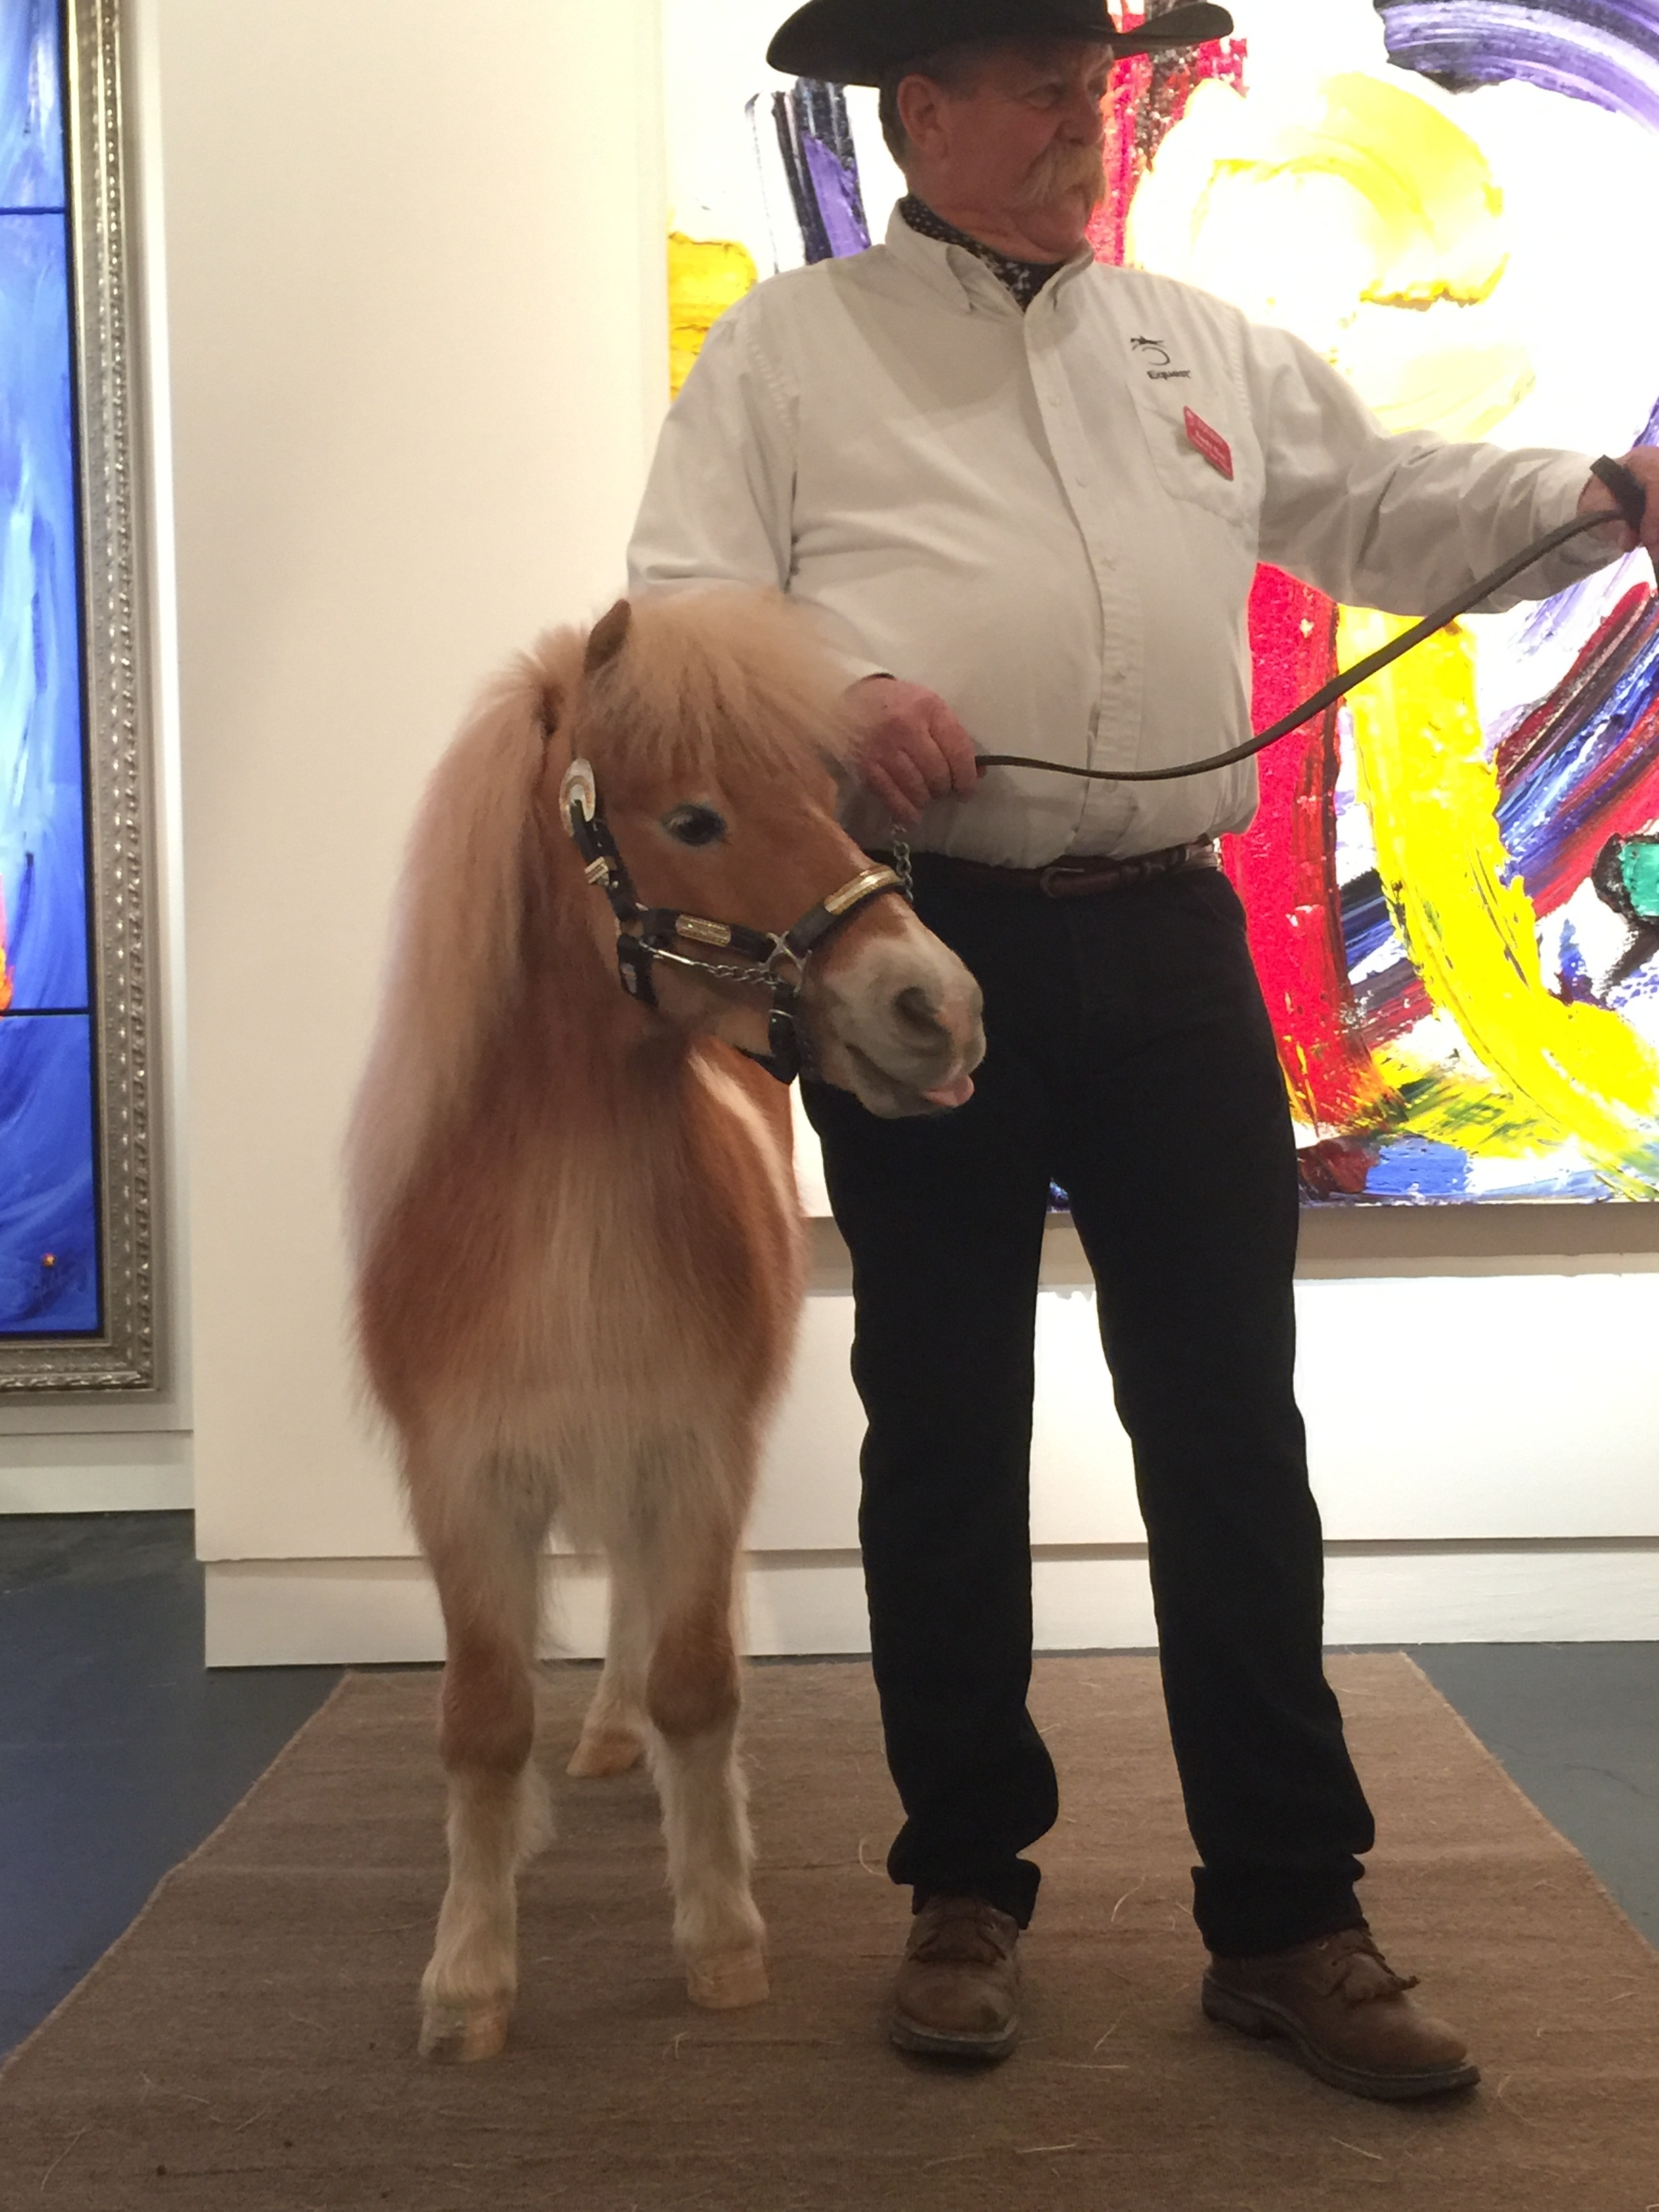 Dare, one of our mini ambassadors, and Randy Hurt at the Samuel Lynne Gallery for Equest's Gala Kick-off Party in January 2017.